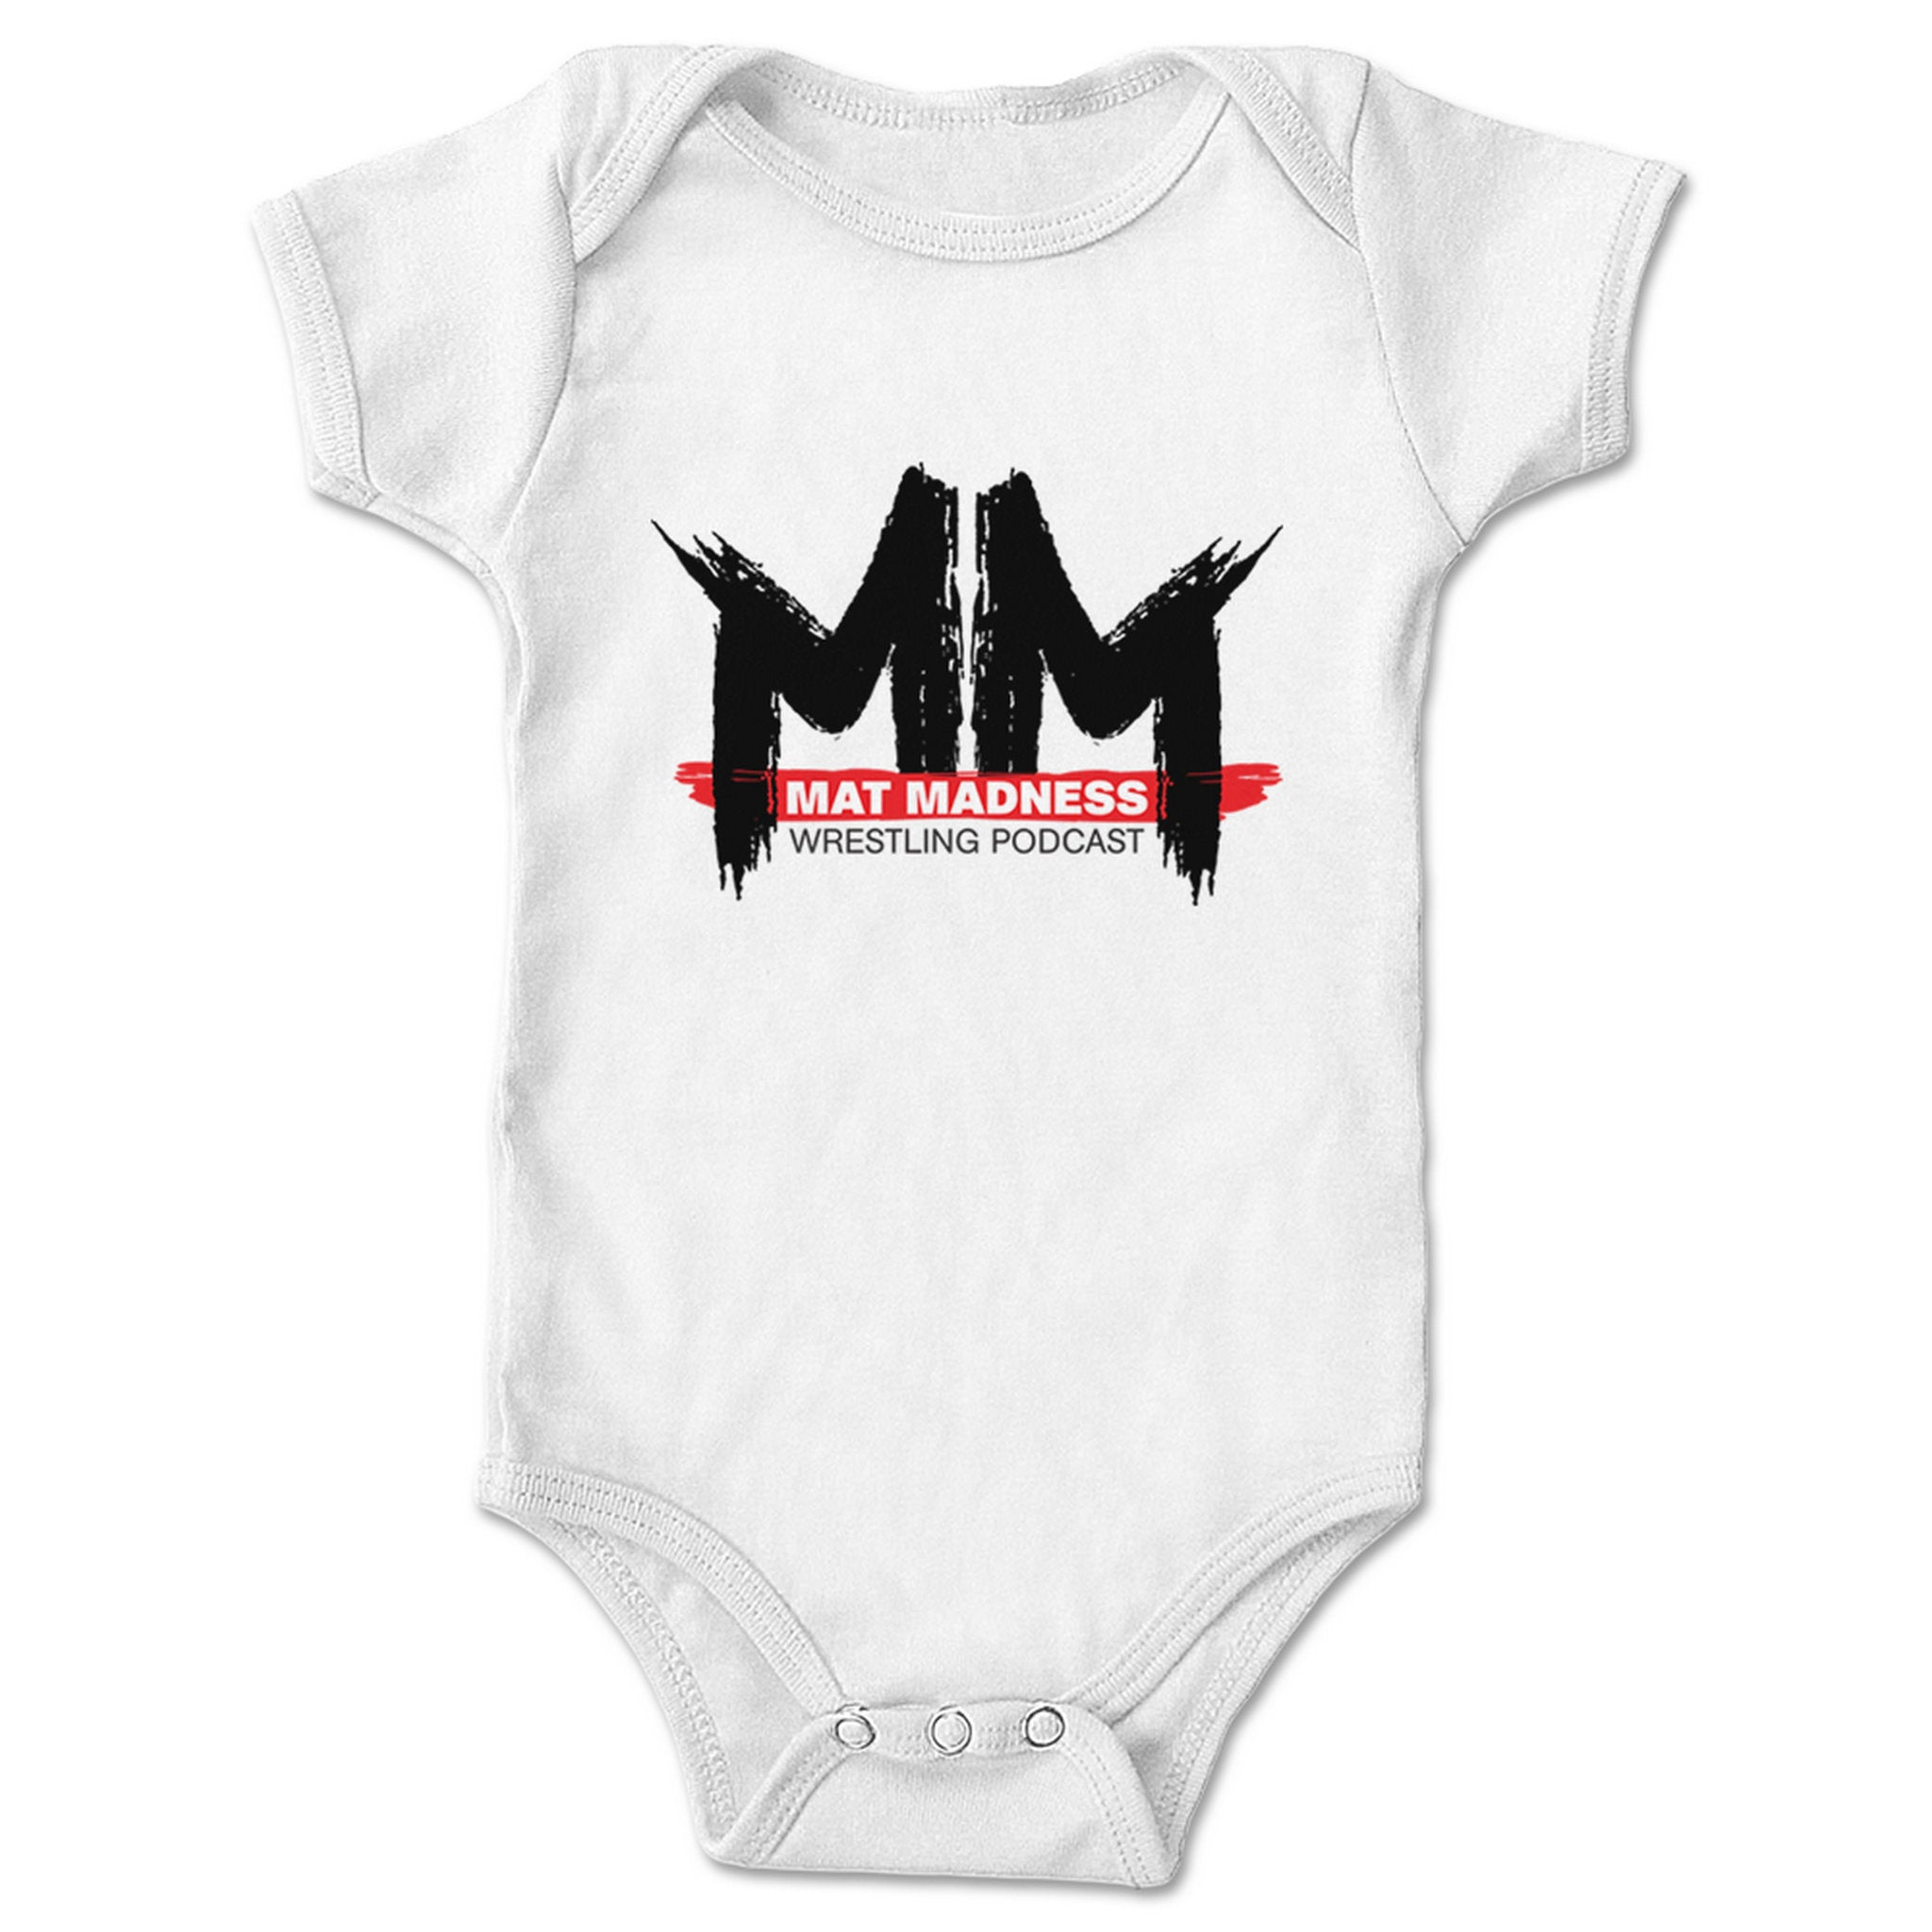 Mat Madness Mat Madness Franchise Logo Infant Onesie What A